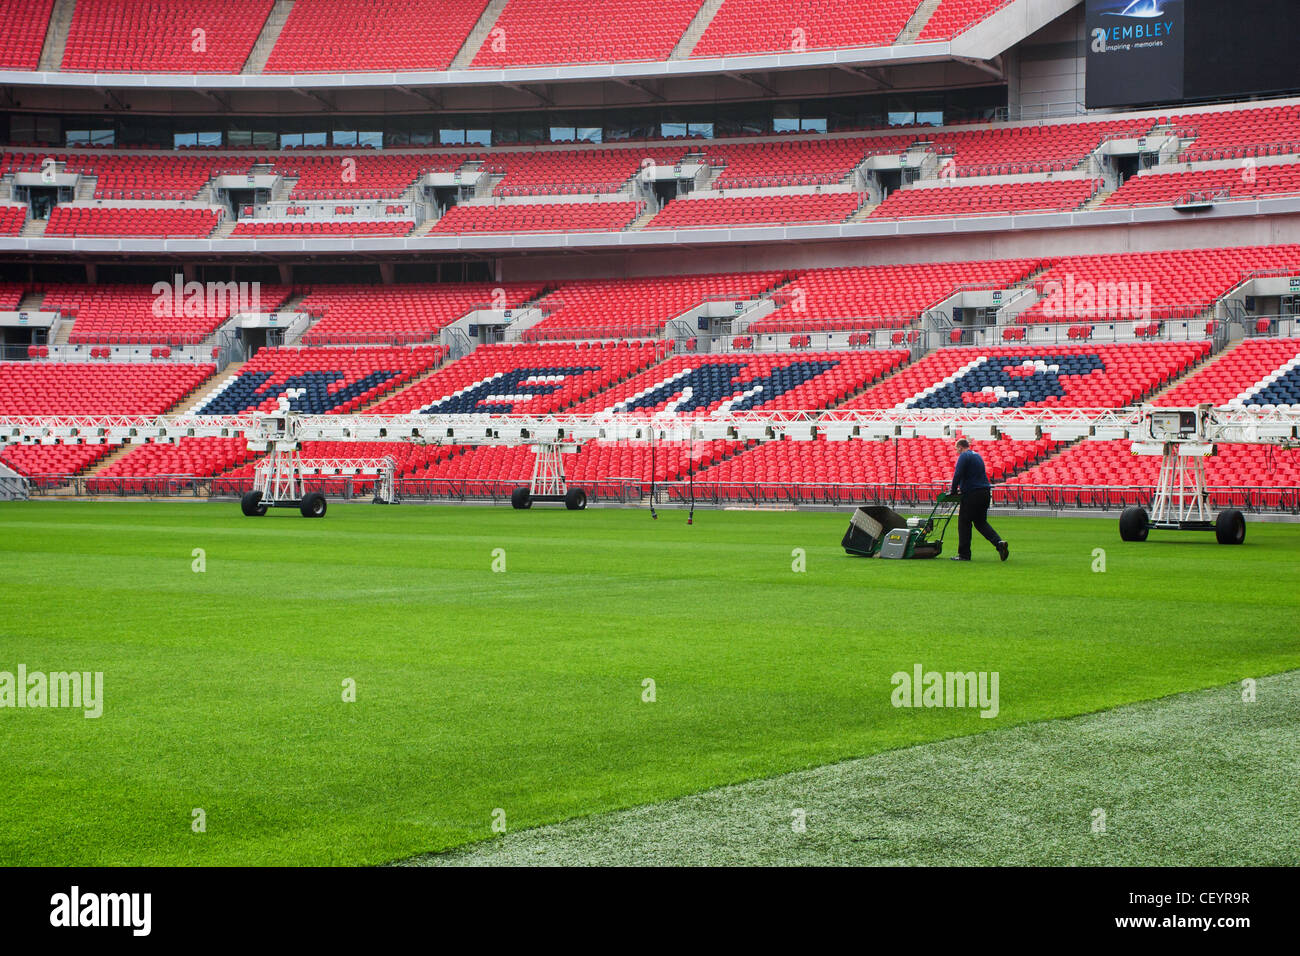 Groundsman cutting the pitch at Wembley Stadium - Stock Image